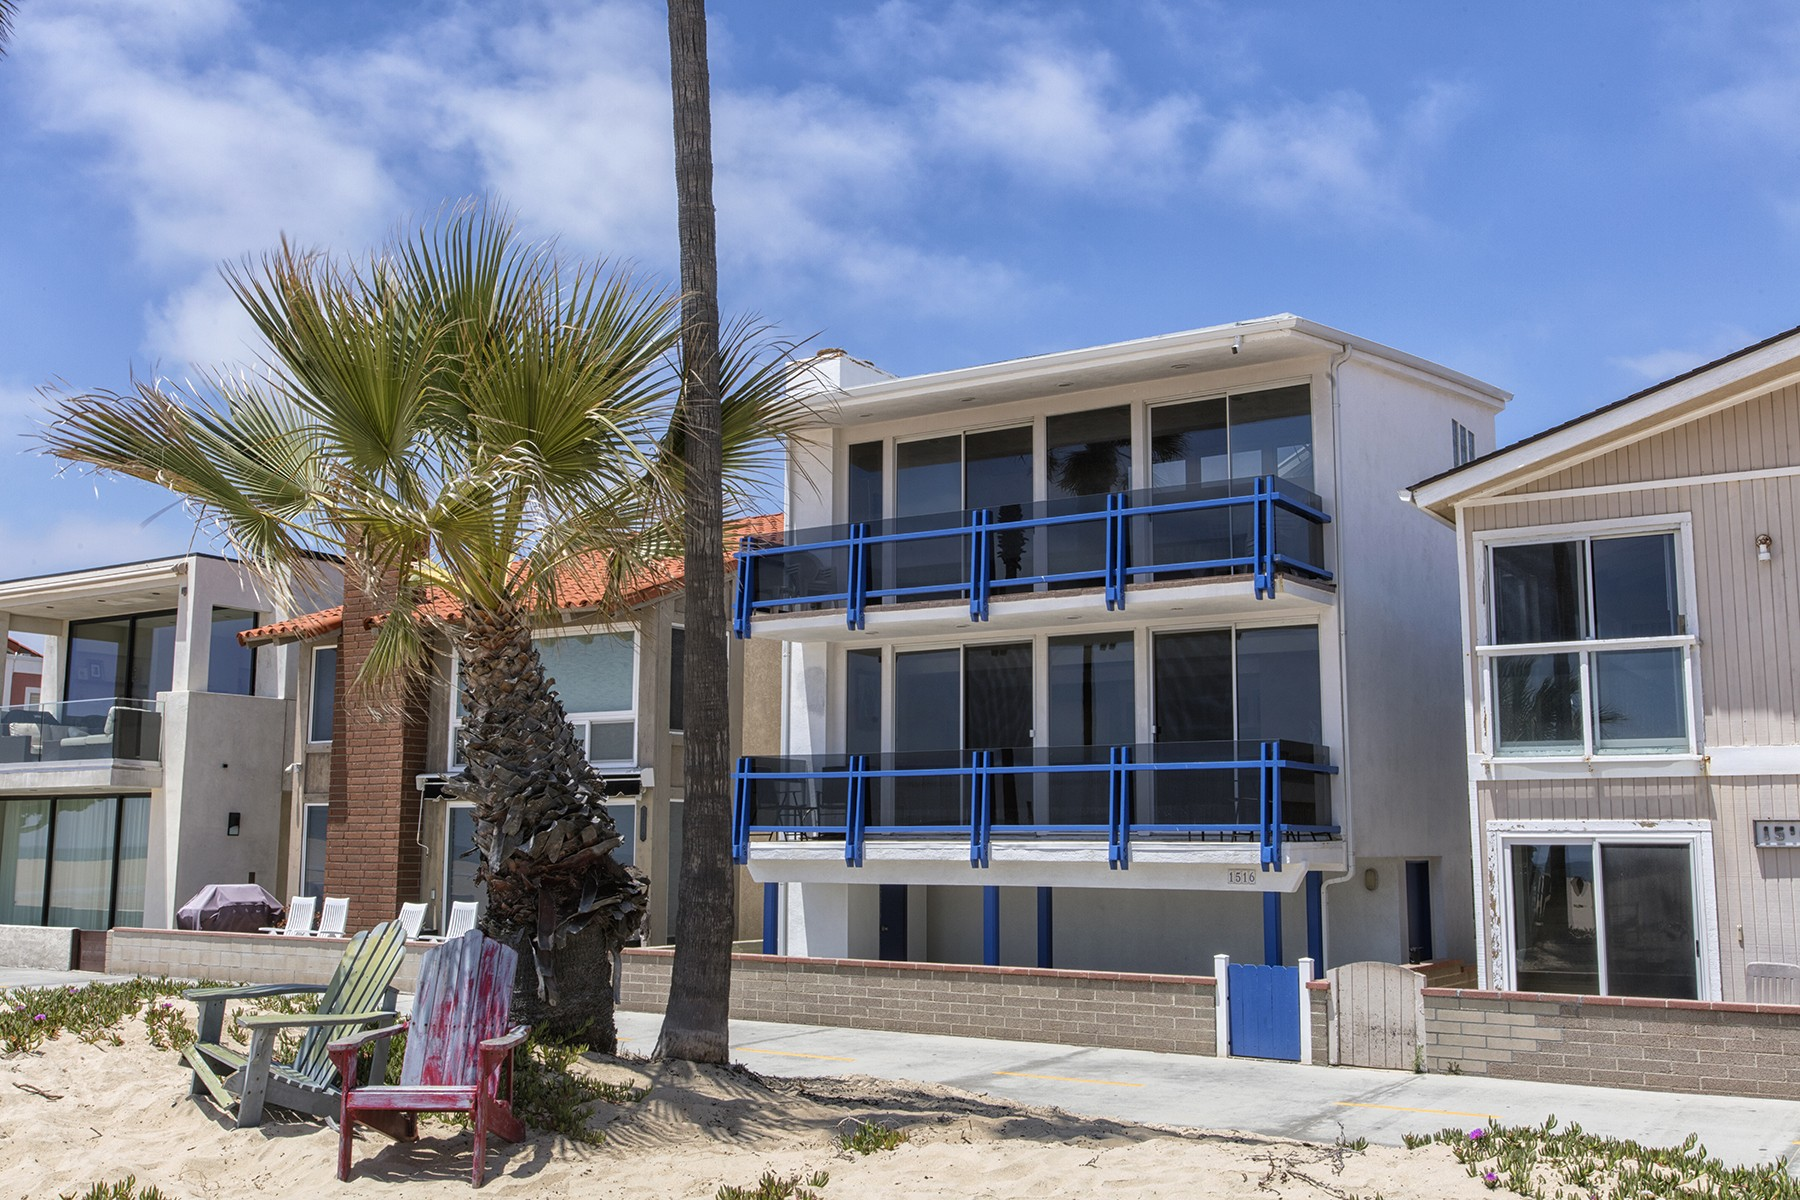 condominiums for Active at 1516 W Oceanfront # B Newport Beach, California 92663 United States